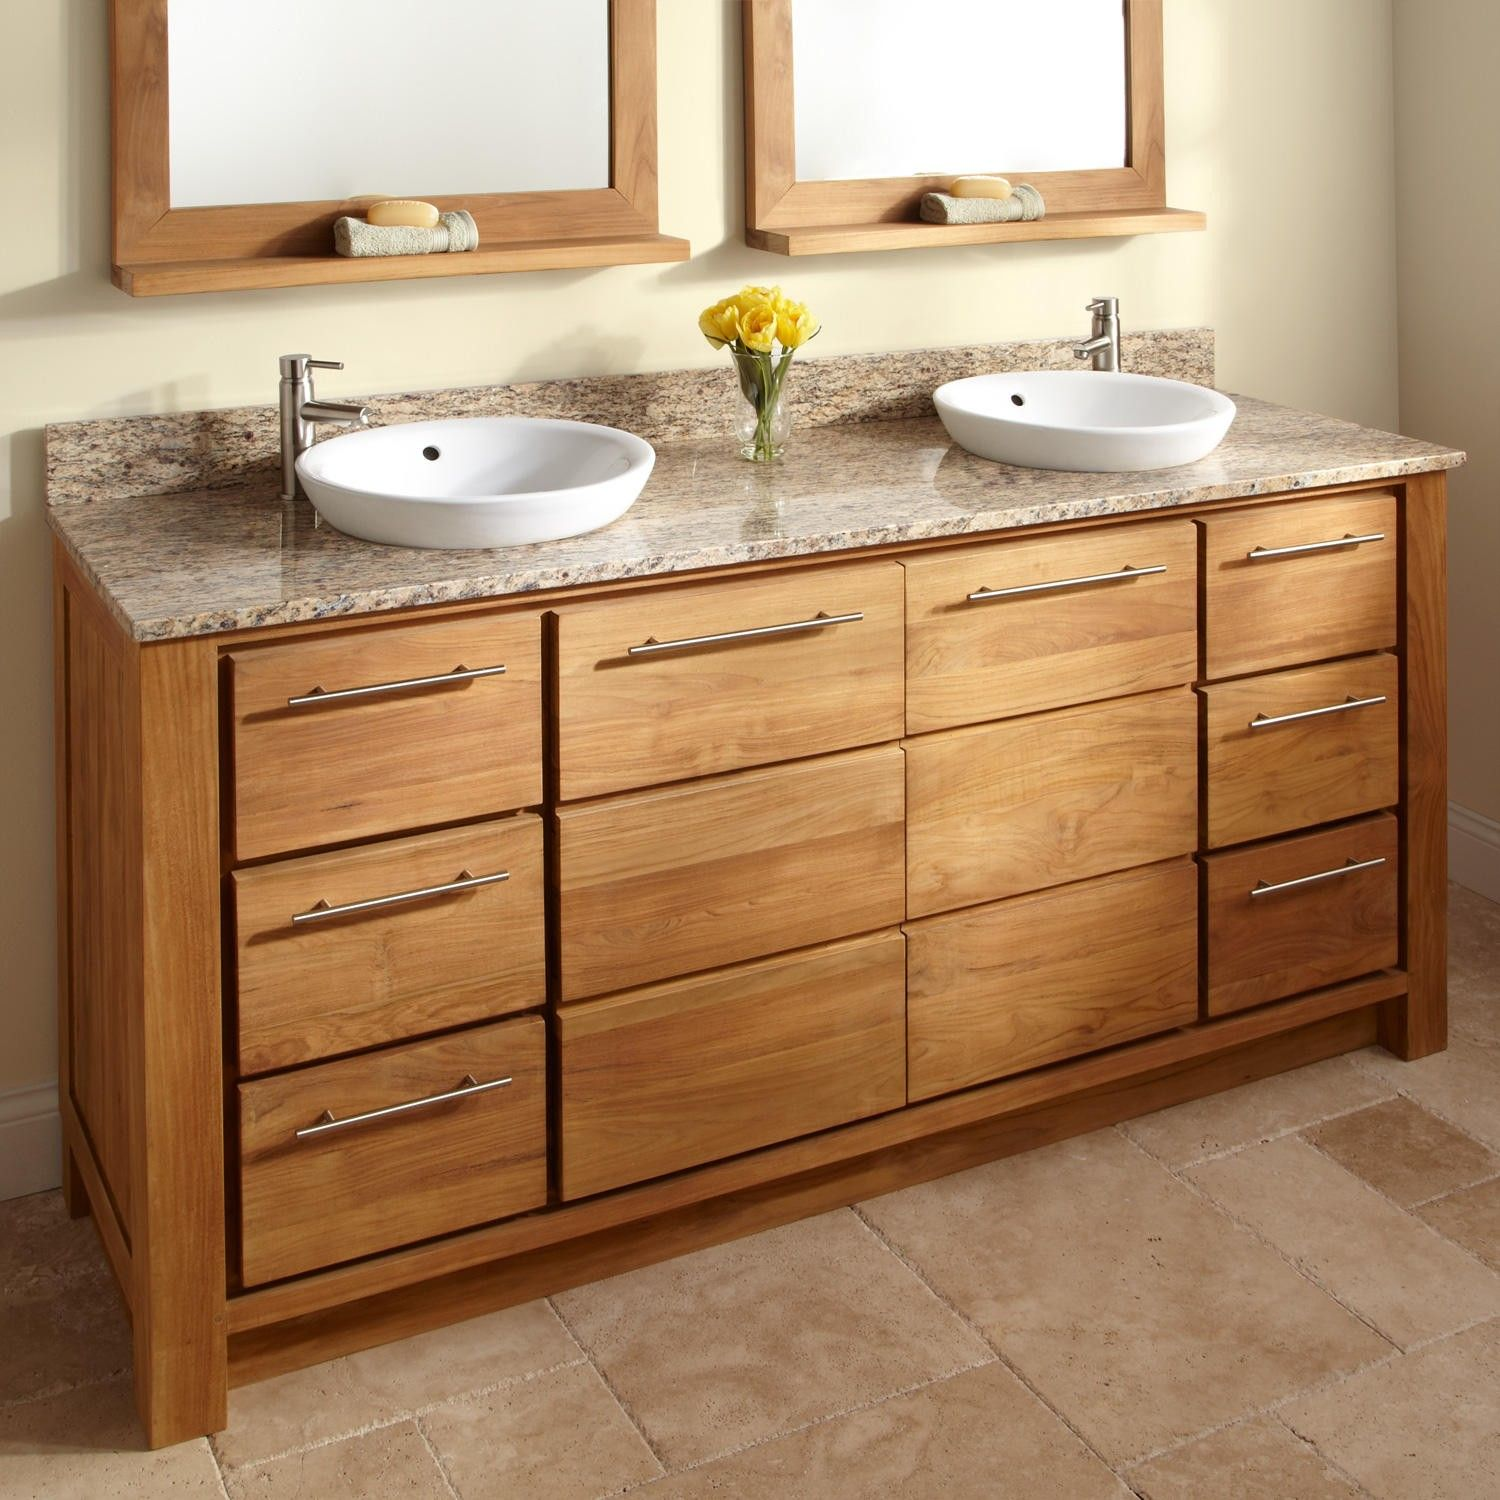 72 Venica Teak Double Vanity For Semi Recessed Sinks Bathroom Vanities Without Tops Cheap Bathroom Vanities Double Sink Bathroom Vanity